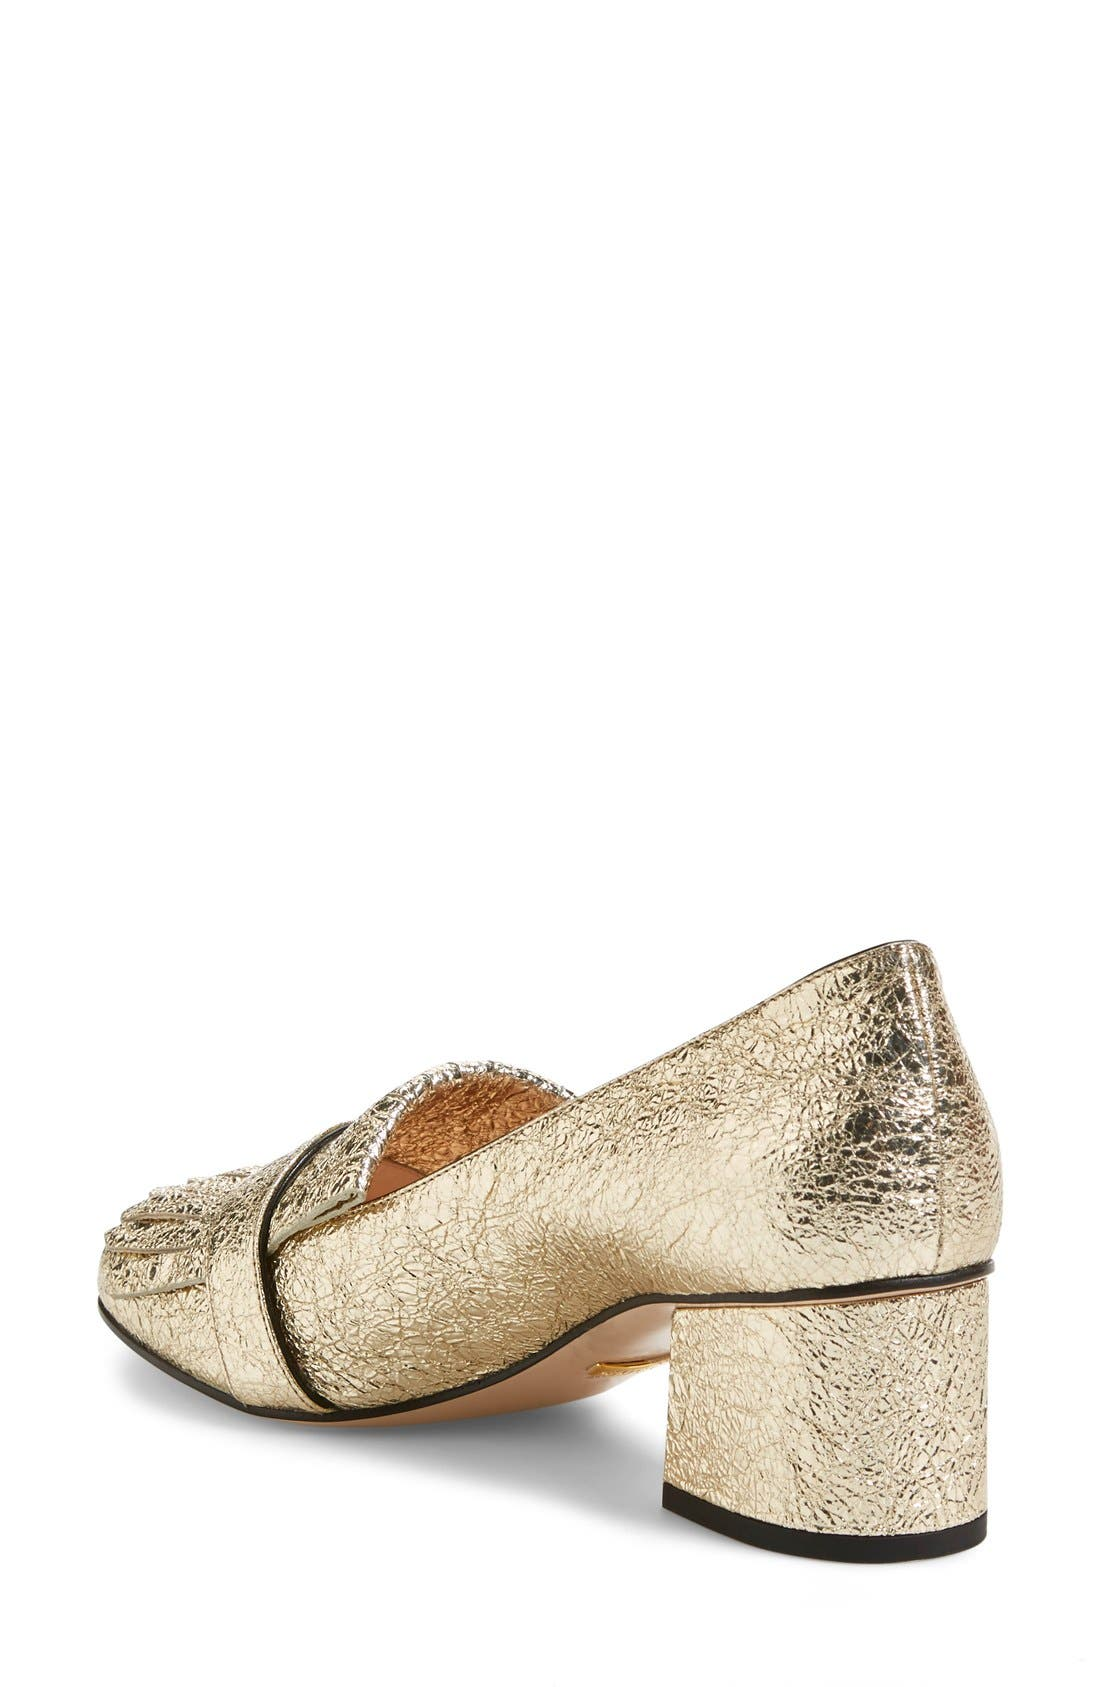 GG Pump,                             Alternate thumbnail 3, color,                             Gold Leather